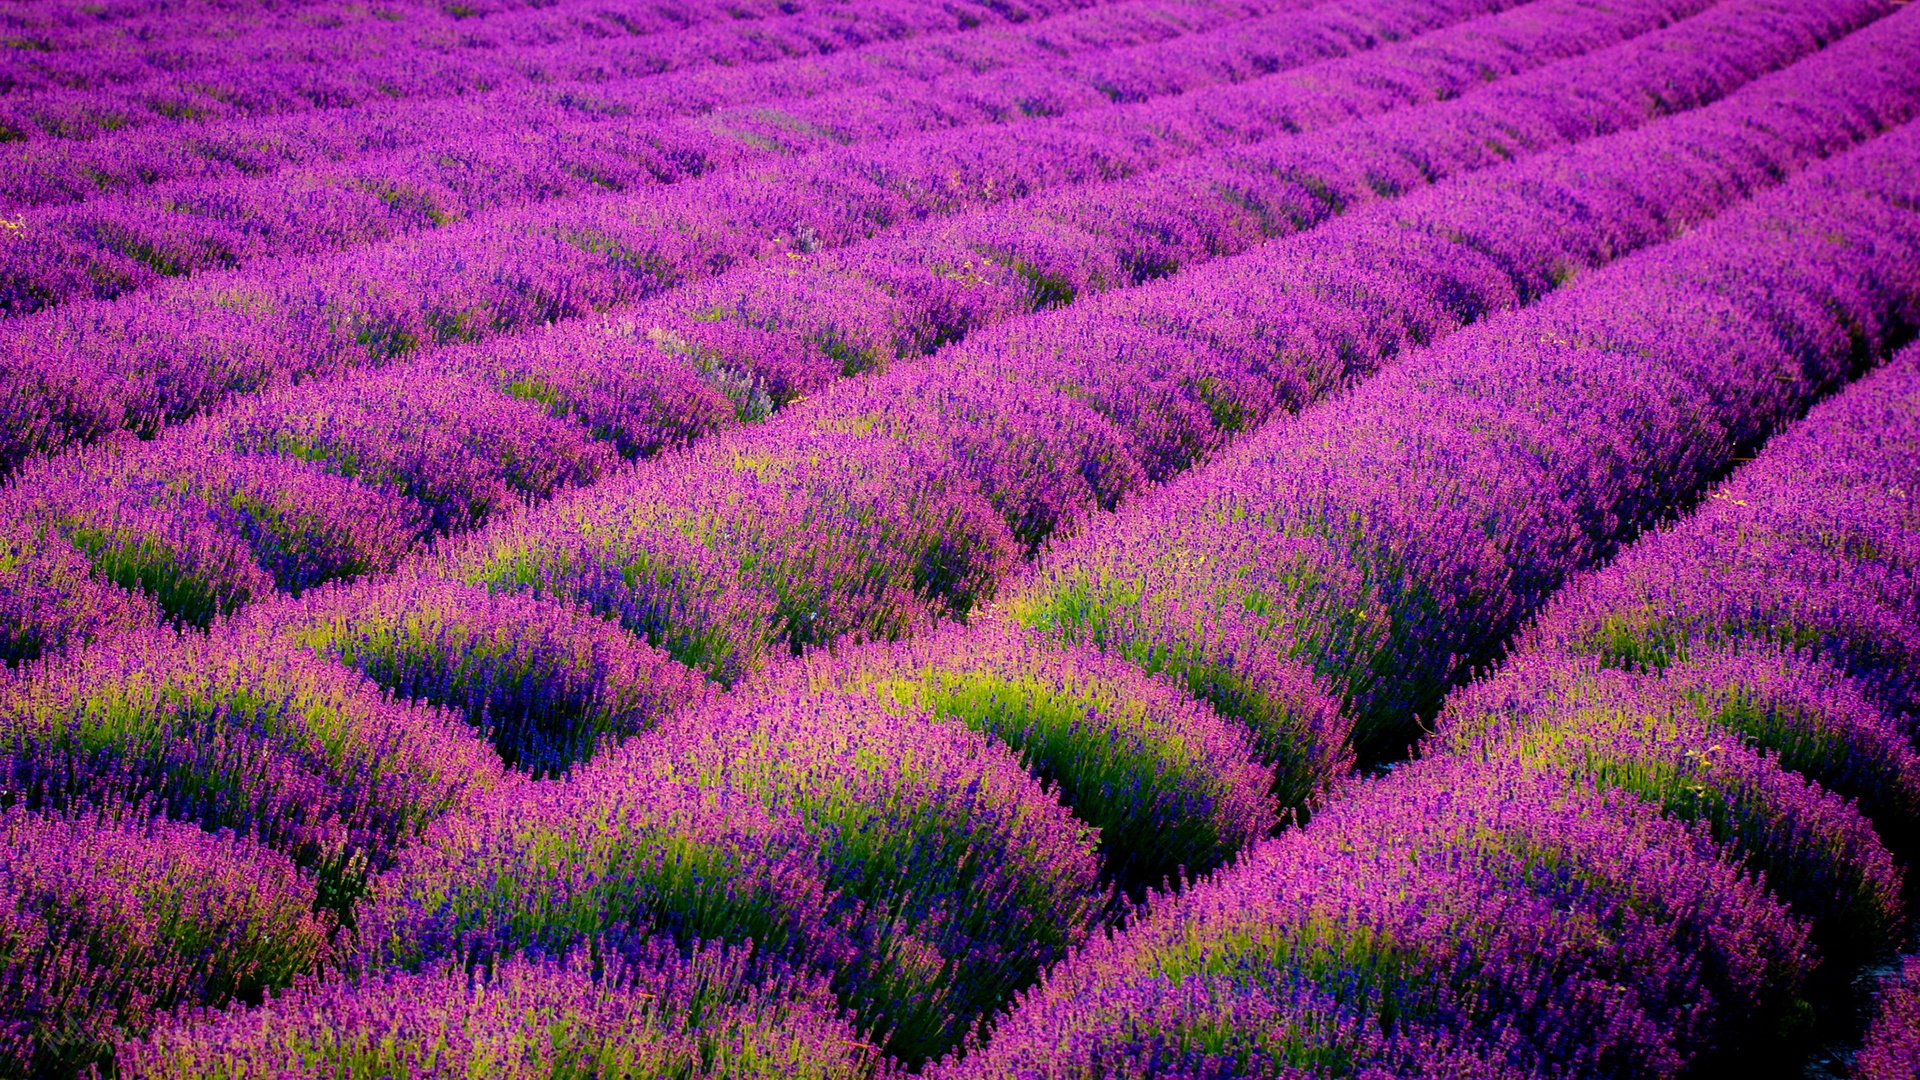 Lavender Field Wallpaper - Wallpaper, High Definition ...